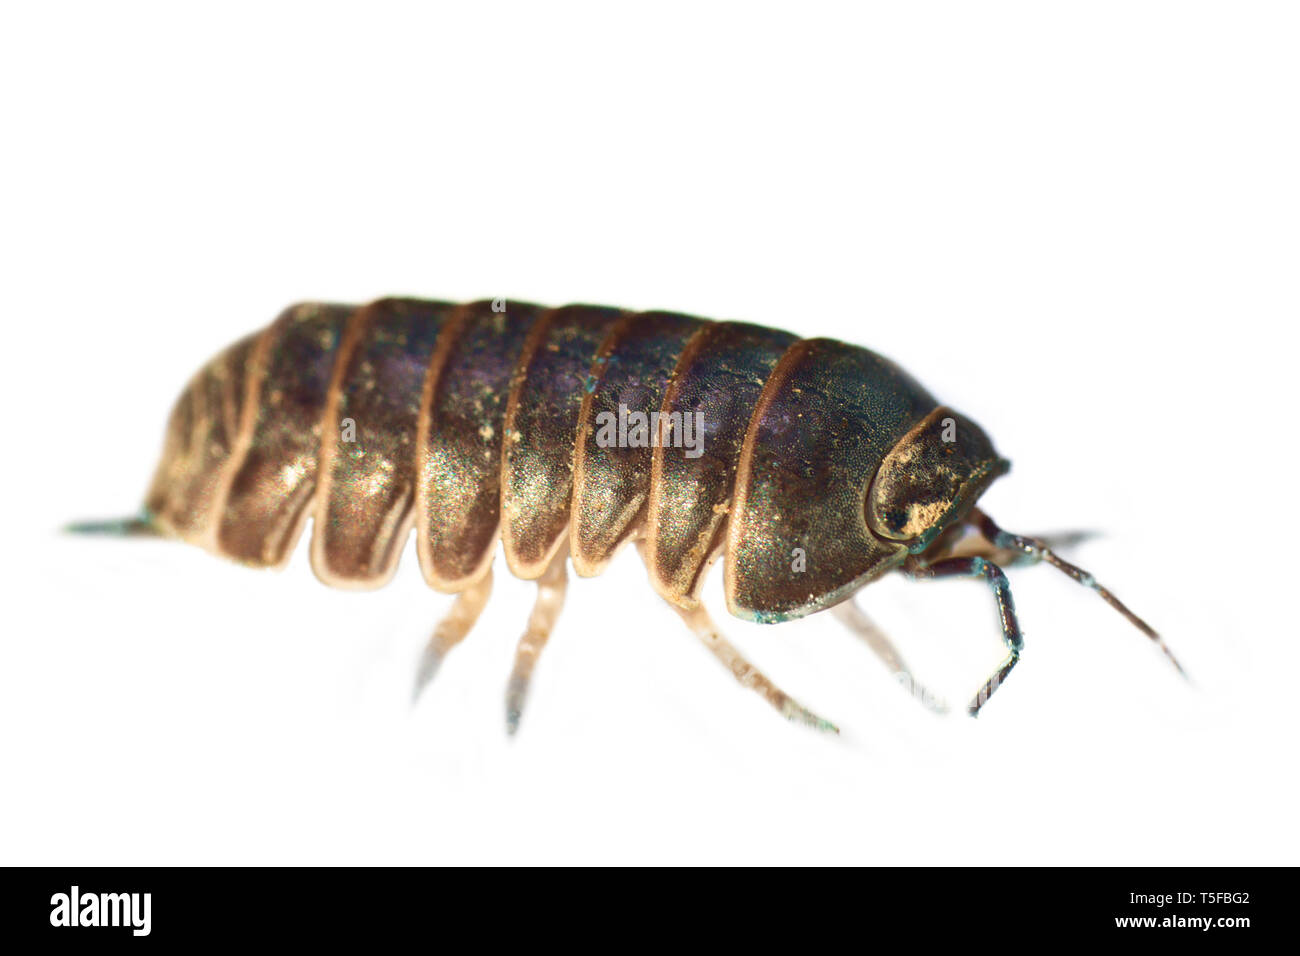 The usual sow bug (wood louse) beautiful in ultra close-up, in white background. All stages of folding into a ball, The inhabitants of the forest floo - Stock Image